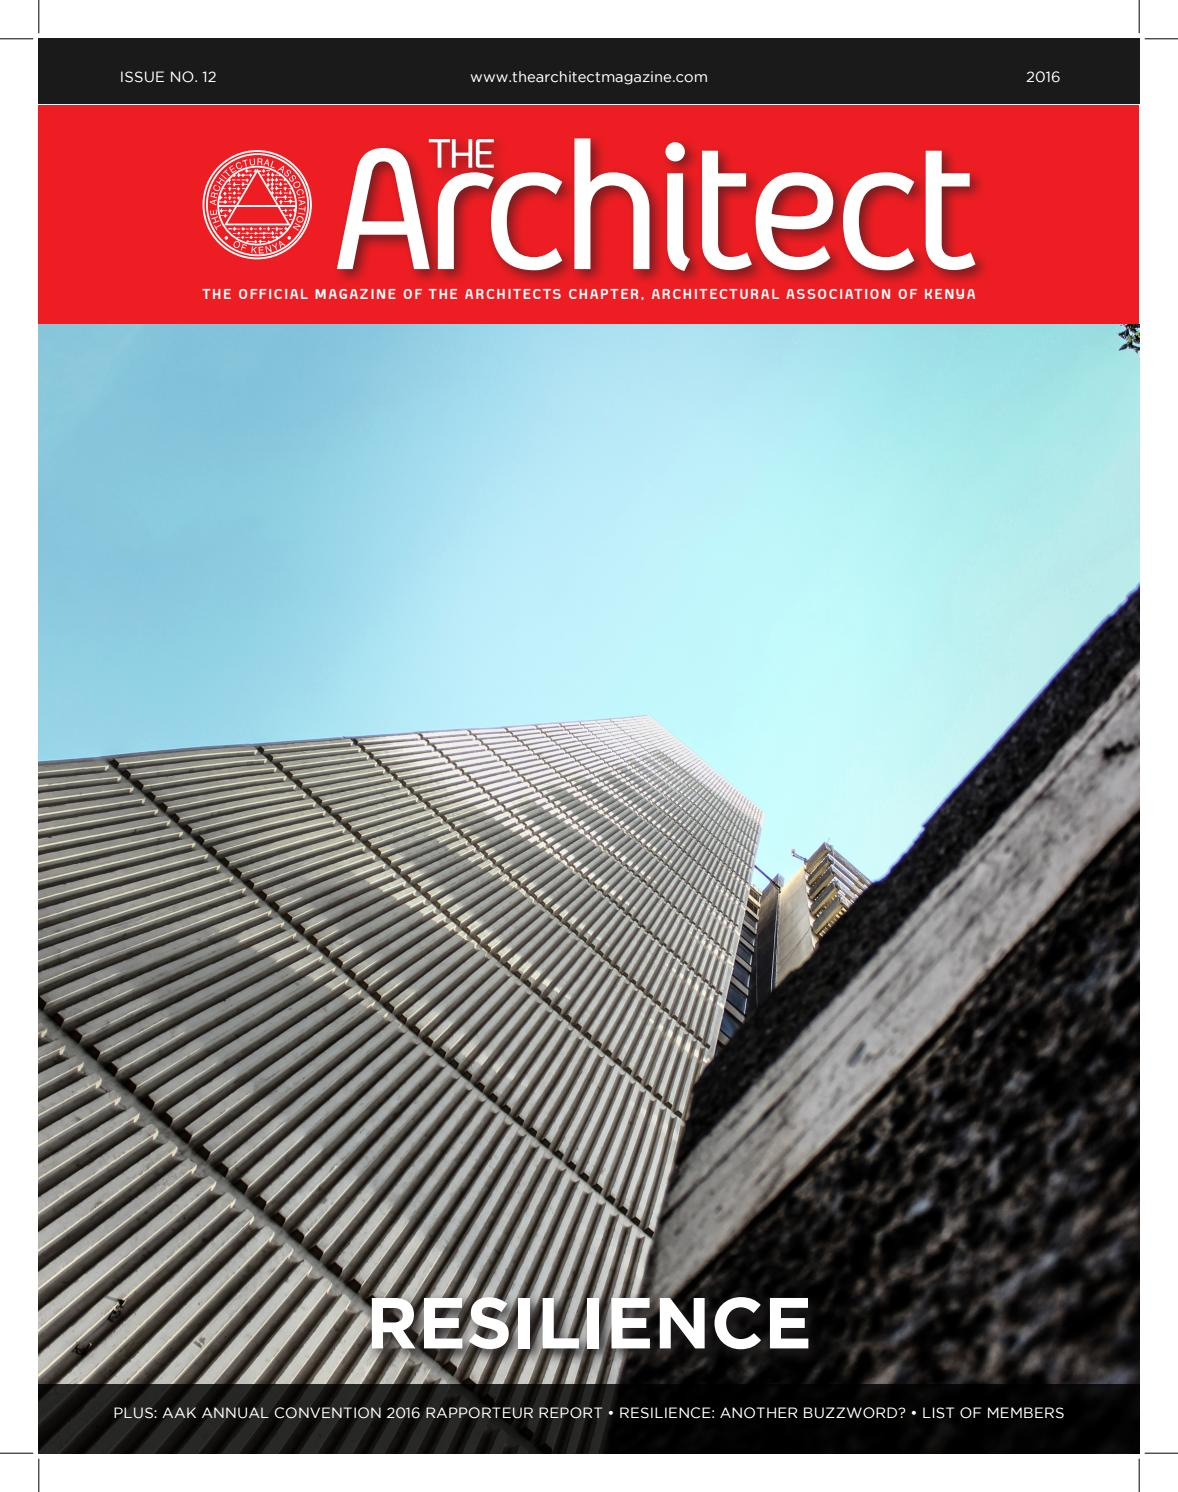 The Architect Magazine Issue 12: Resilience by Hazary Nic - issuu